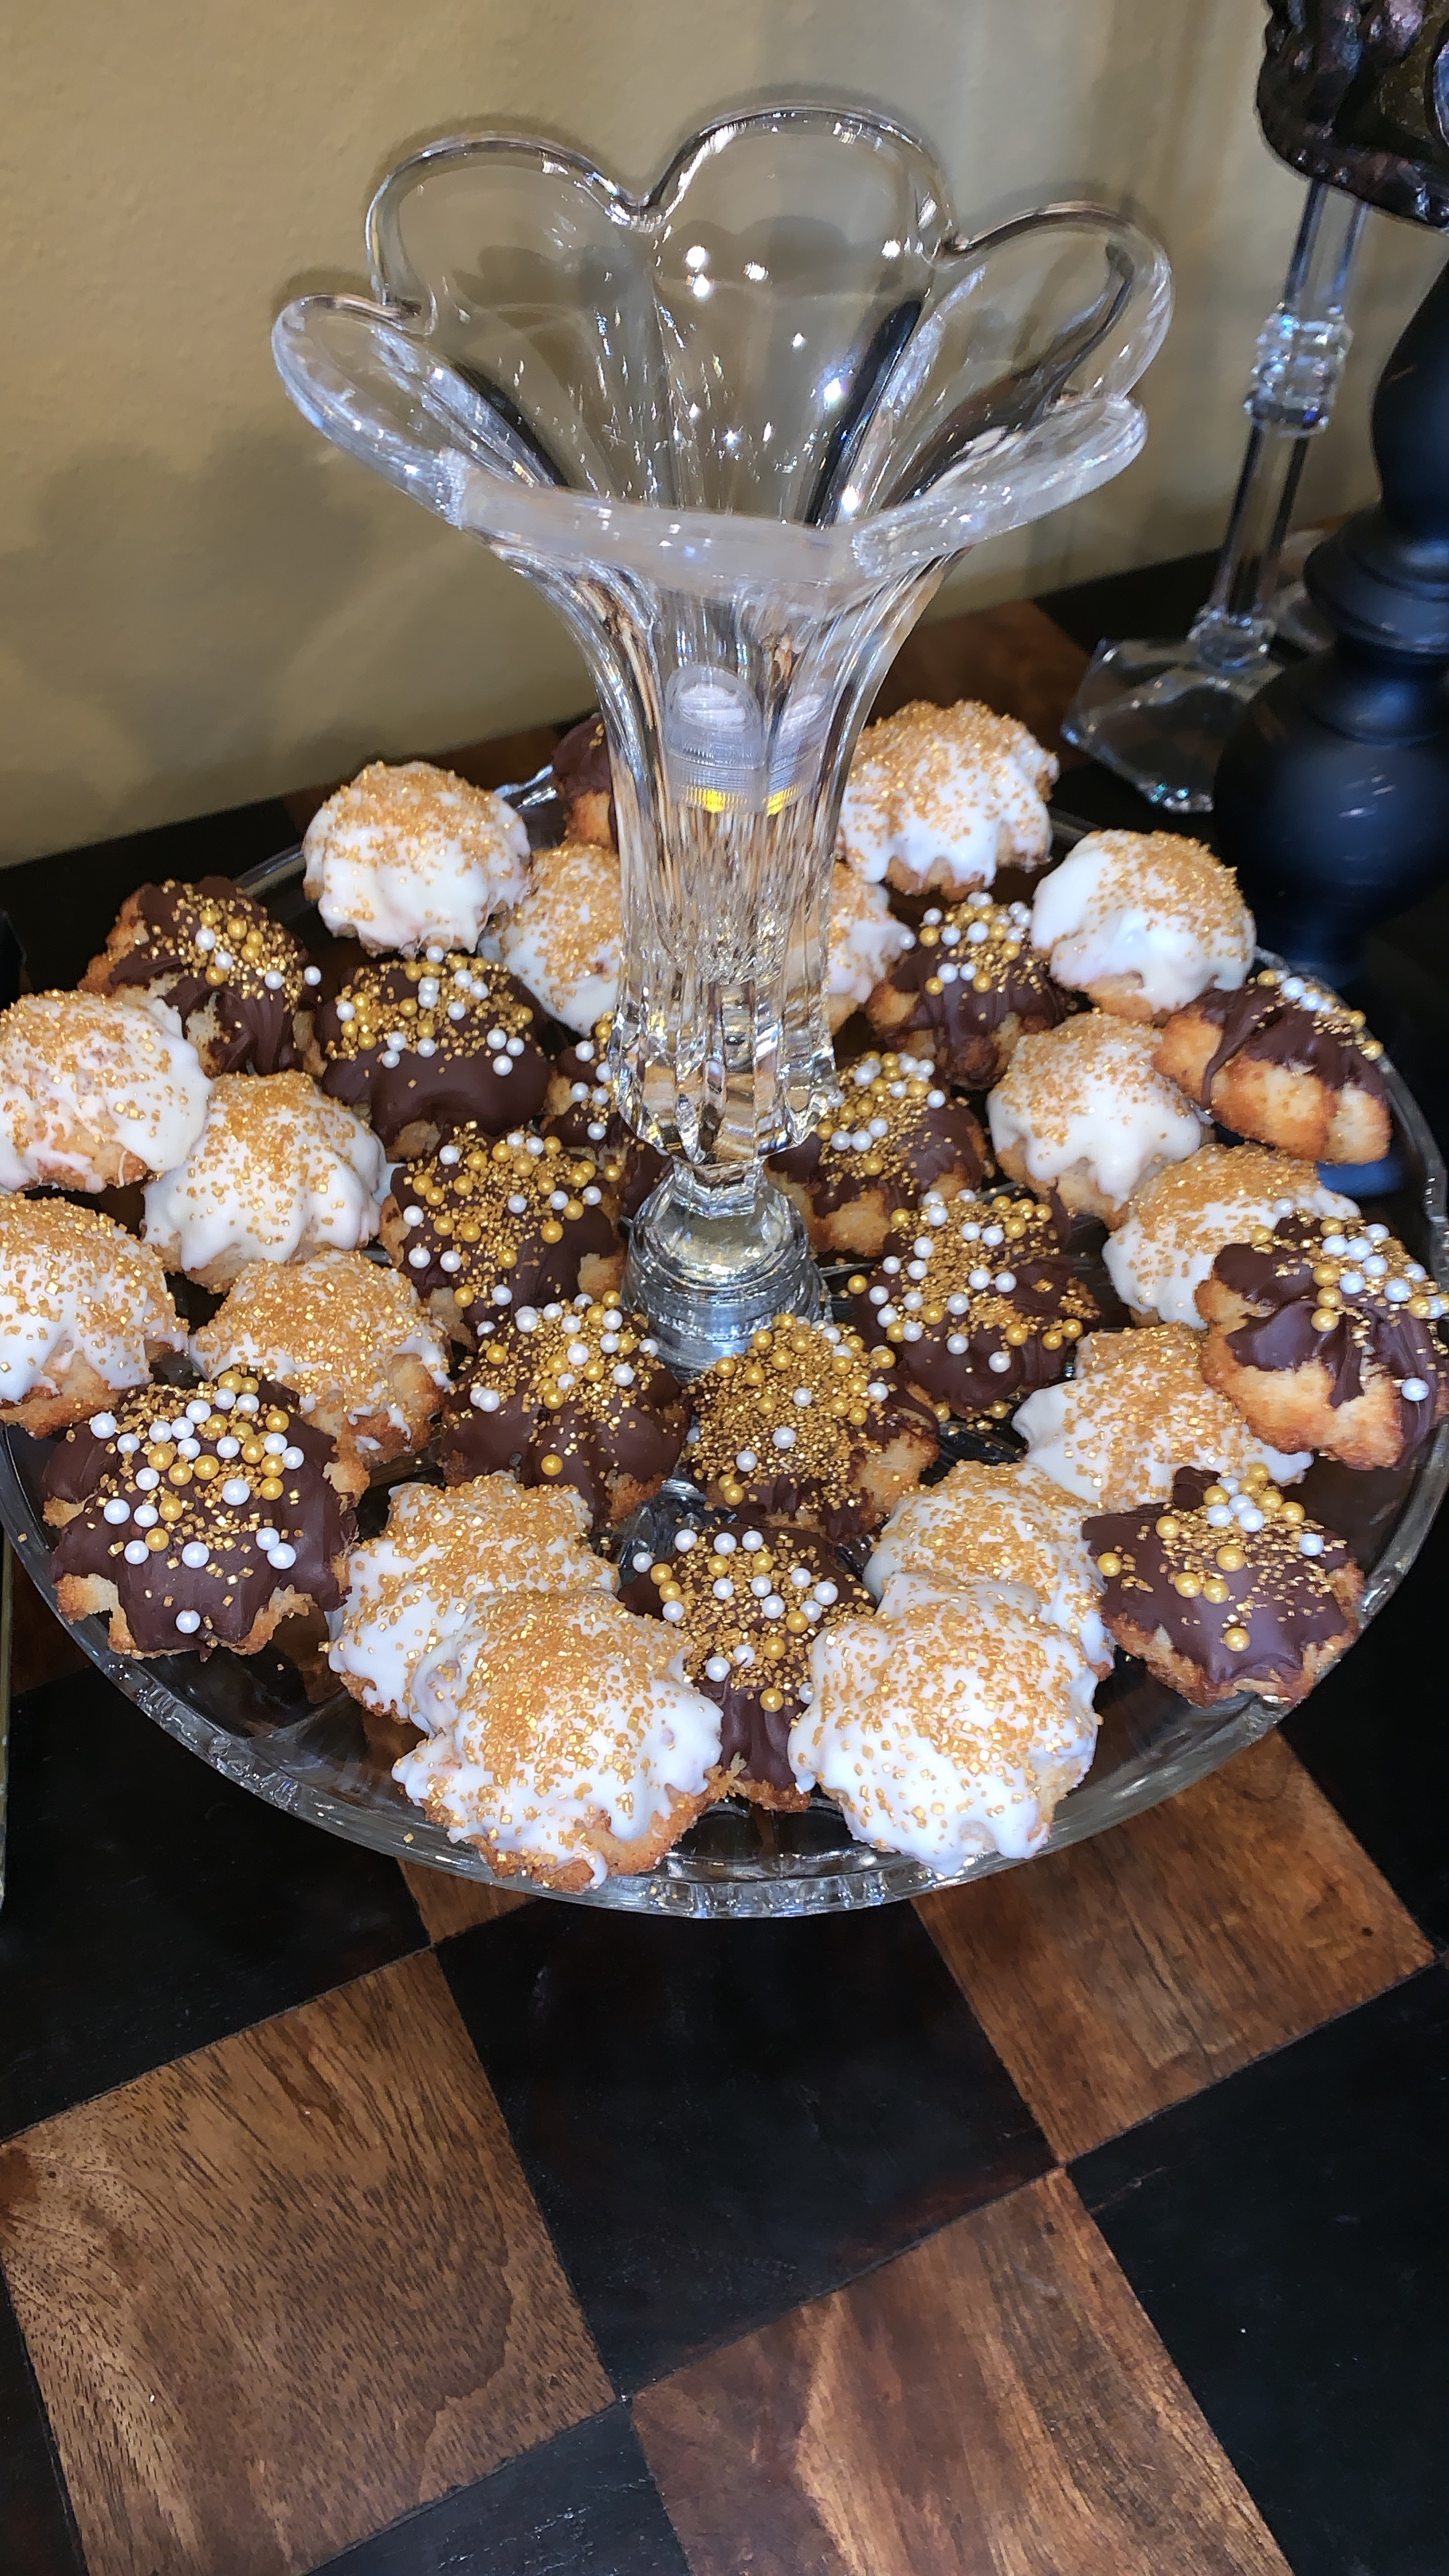 Chocolate dipped & decorated coconut macaroons